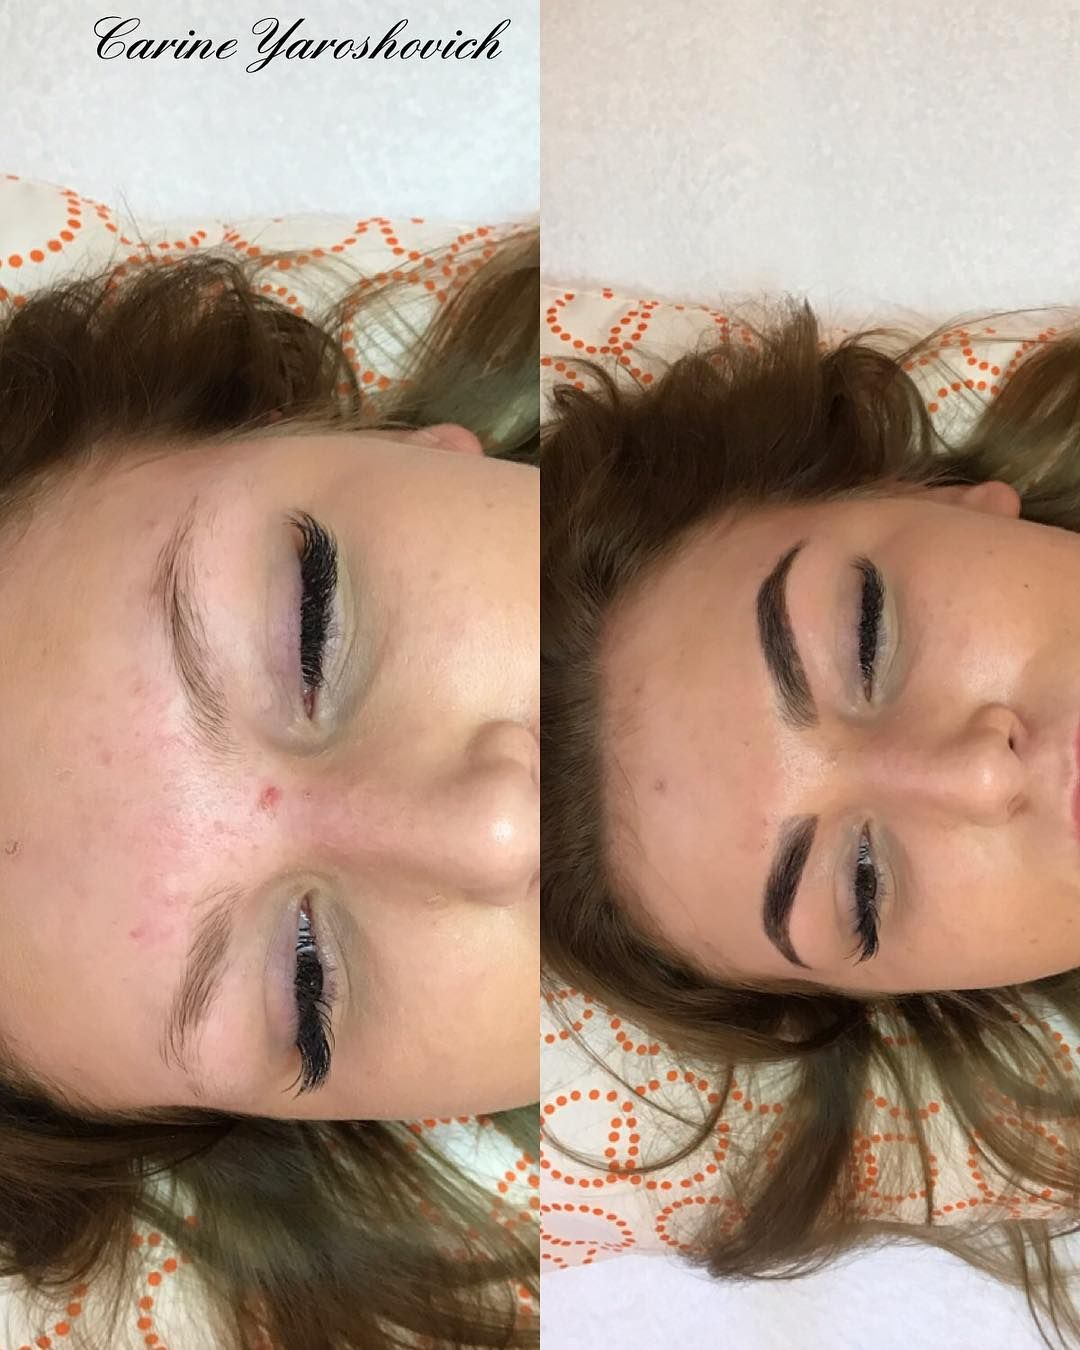 Follow the changes ������ Shaping and coloring using bio brow henna ! worldwide technology #wowbrows �� Appointments WUP +420 773 664 609 #cosmetology http://tipsrazzi.com/ipost/1517572337078145796/?code=BUPgAAIgJME